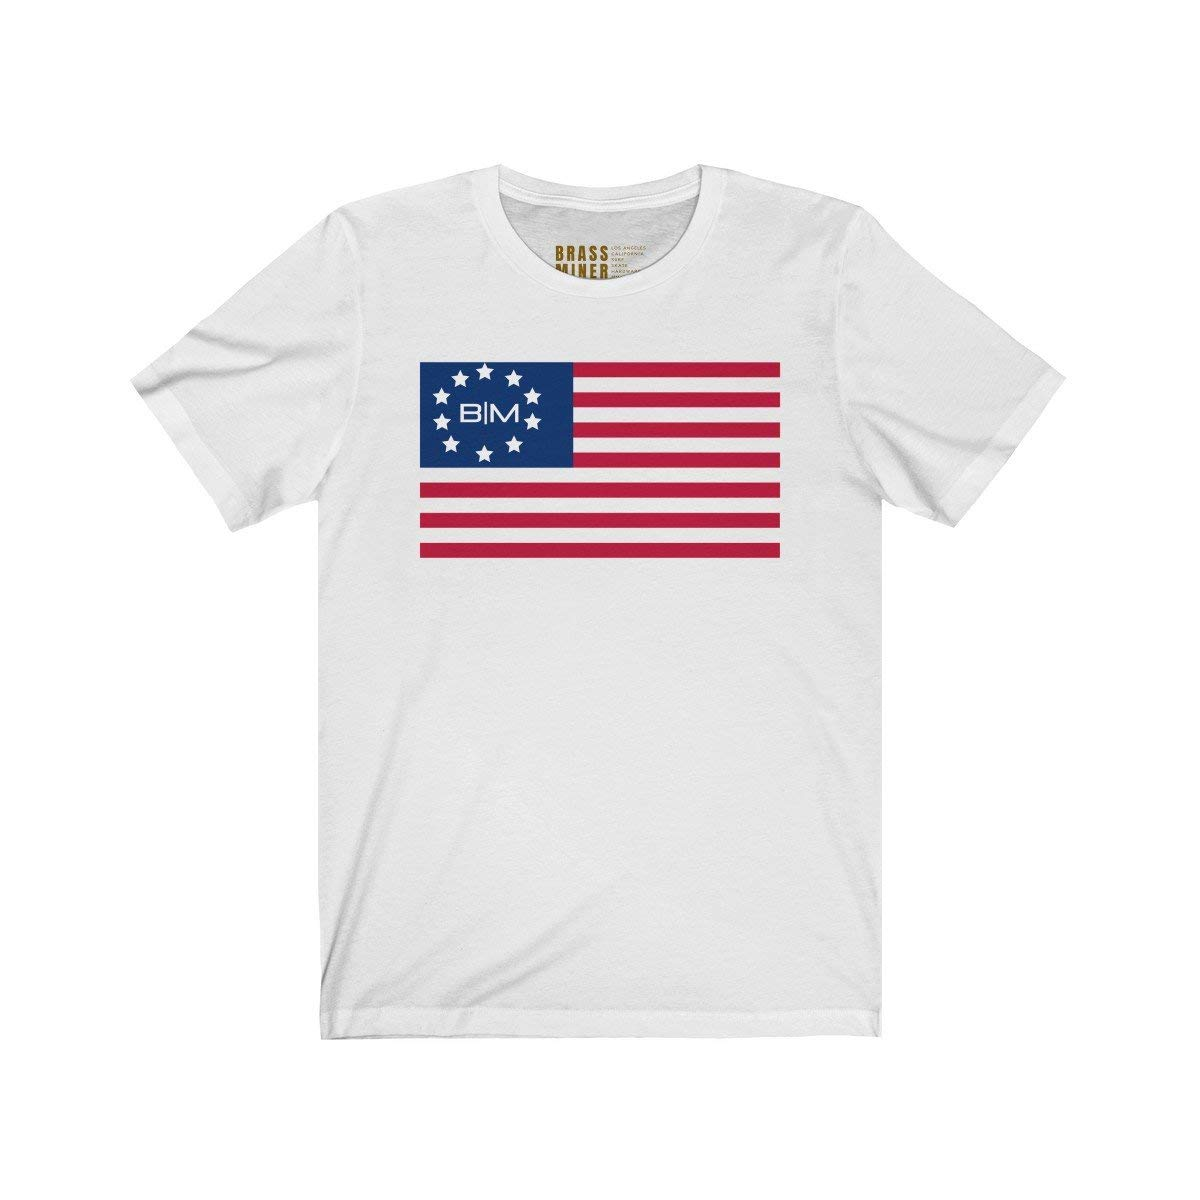 Brass and Miner Patriot T-Shirt